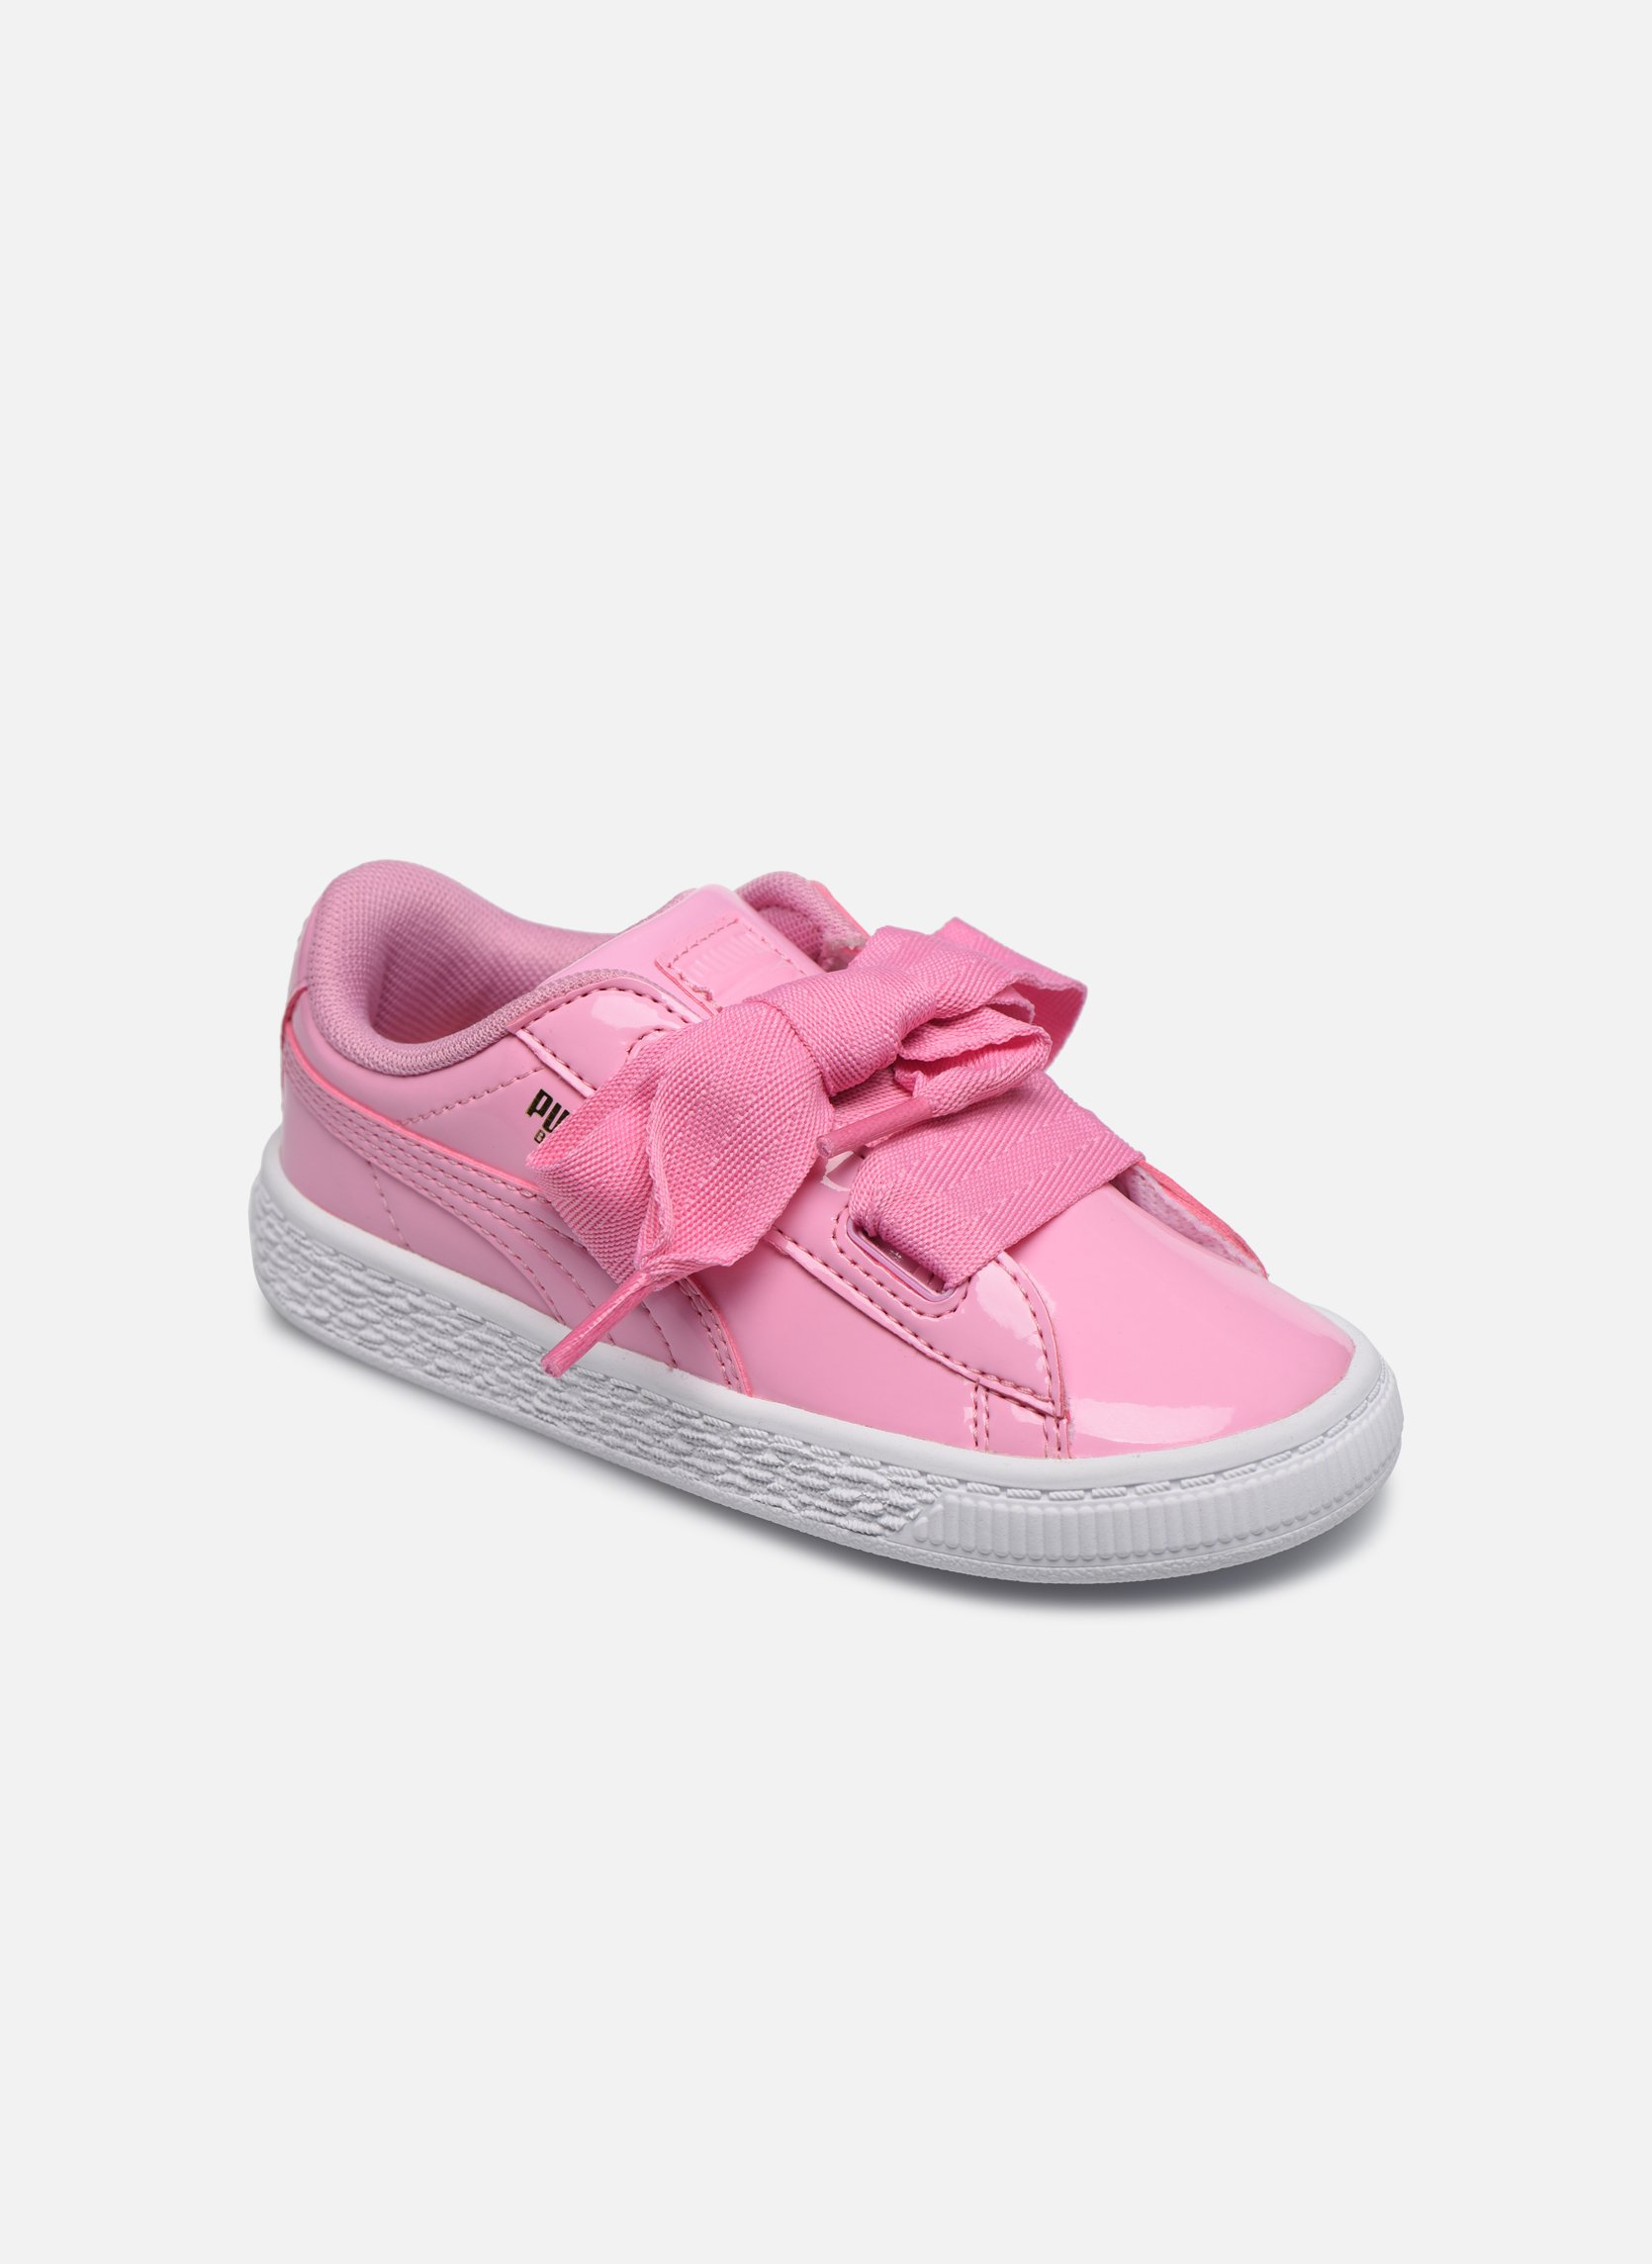 puma basket heart rosa kinder